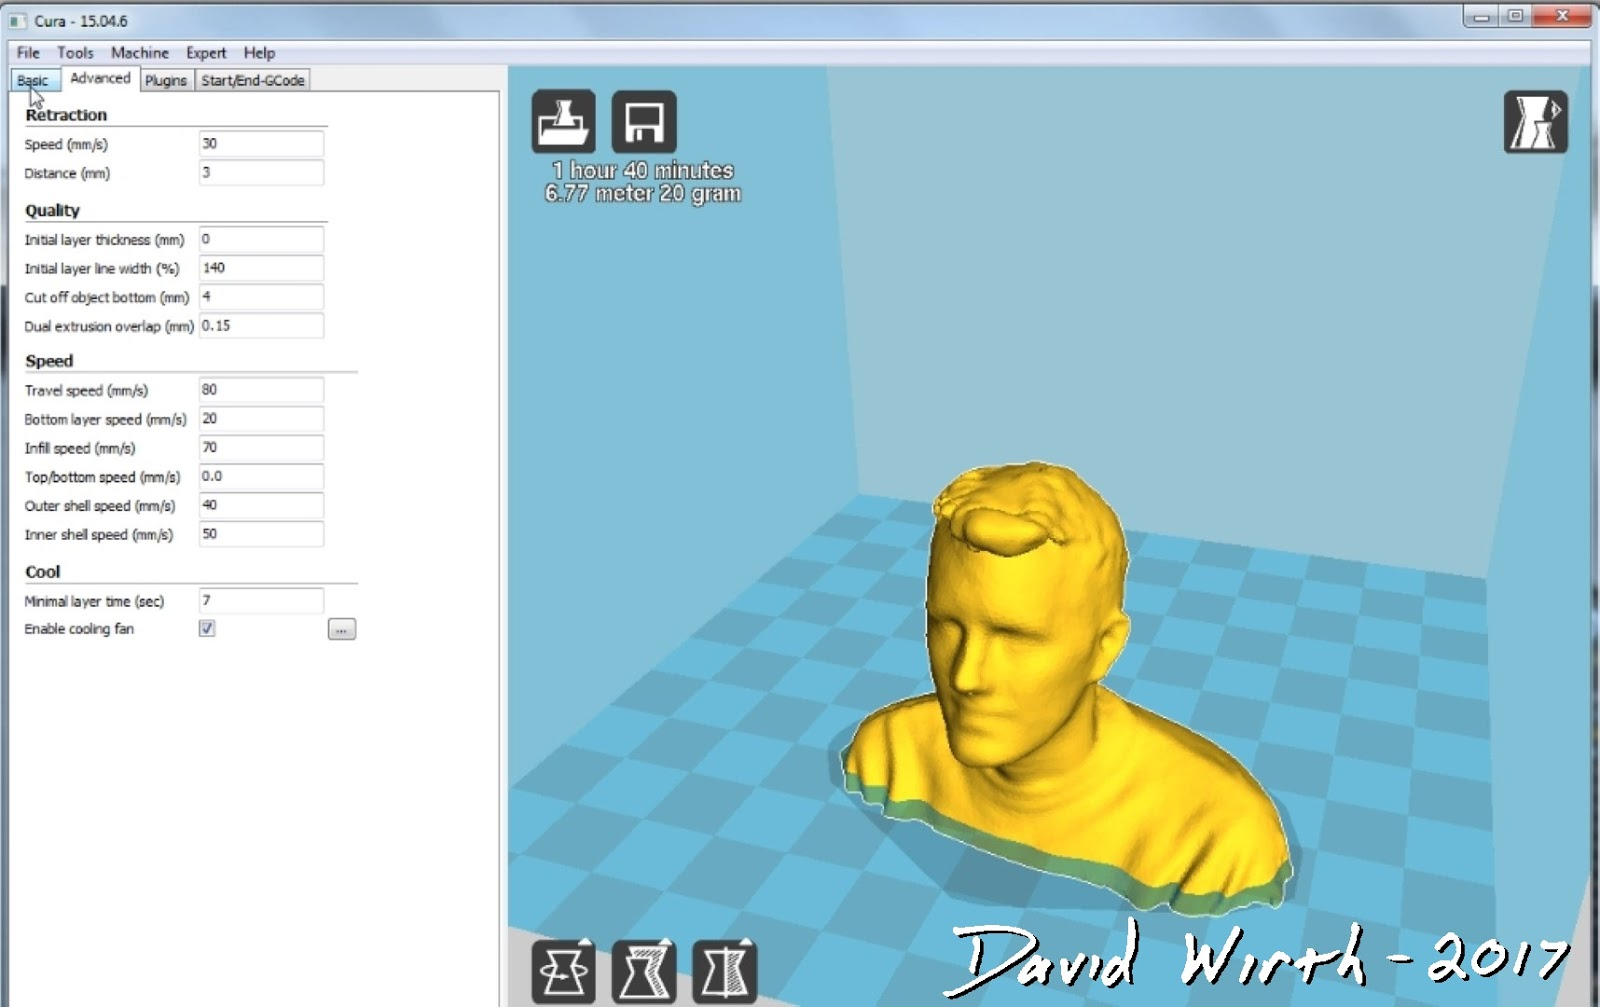 Scan and 3D Print Yourself - XBOX Kinect - 3D Printer